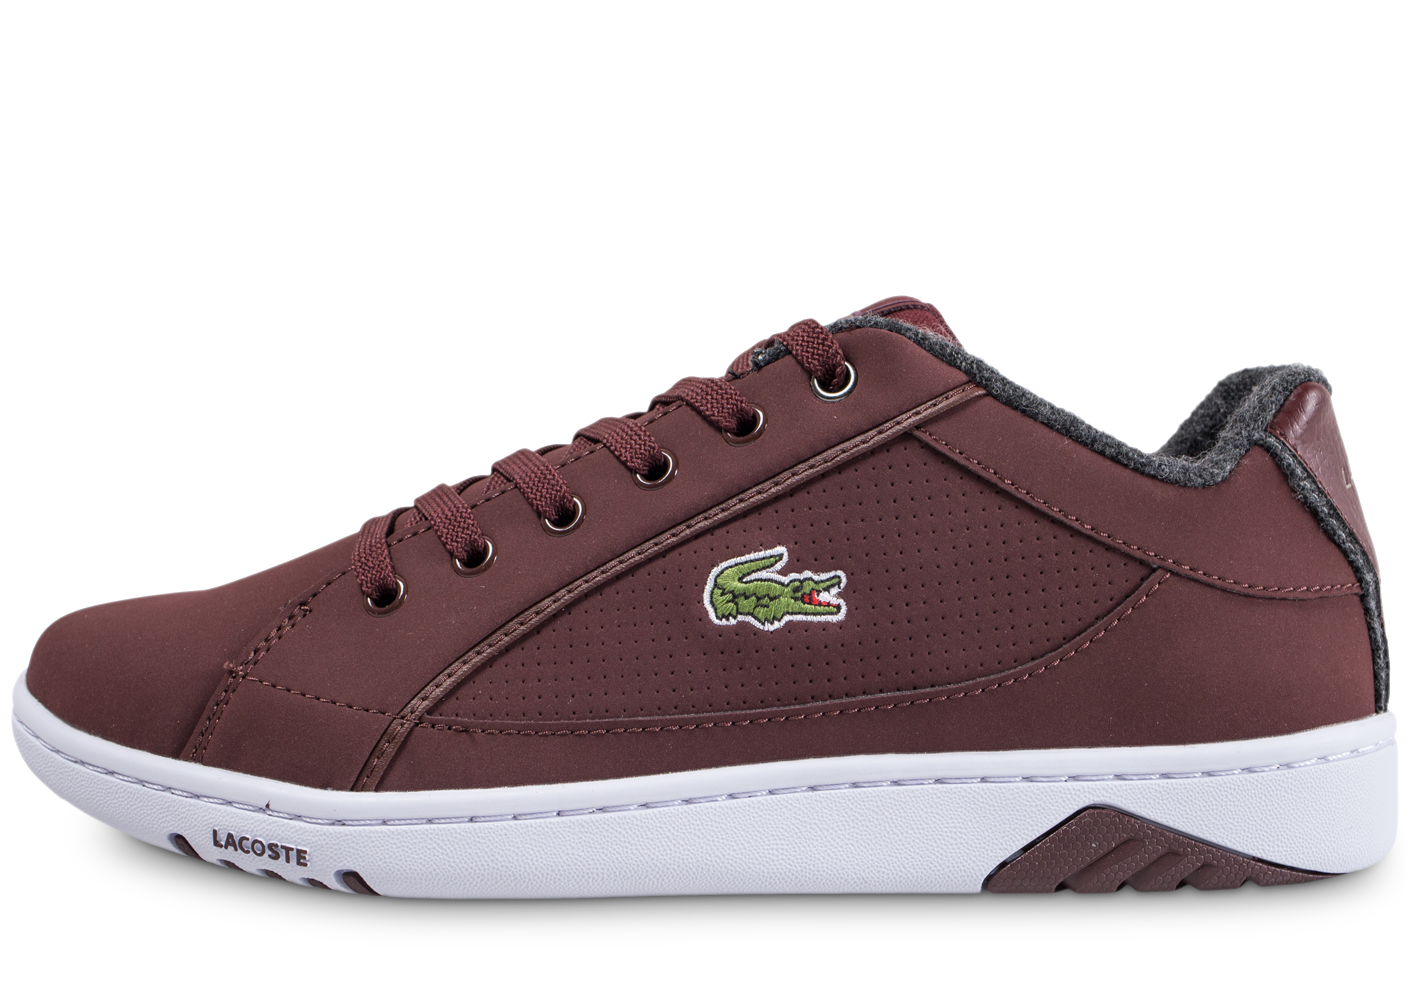 Lacoste Homme Deviation Marron Baskets